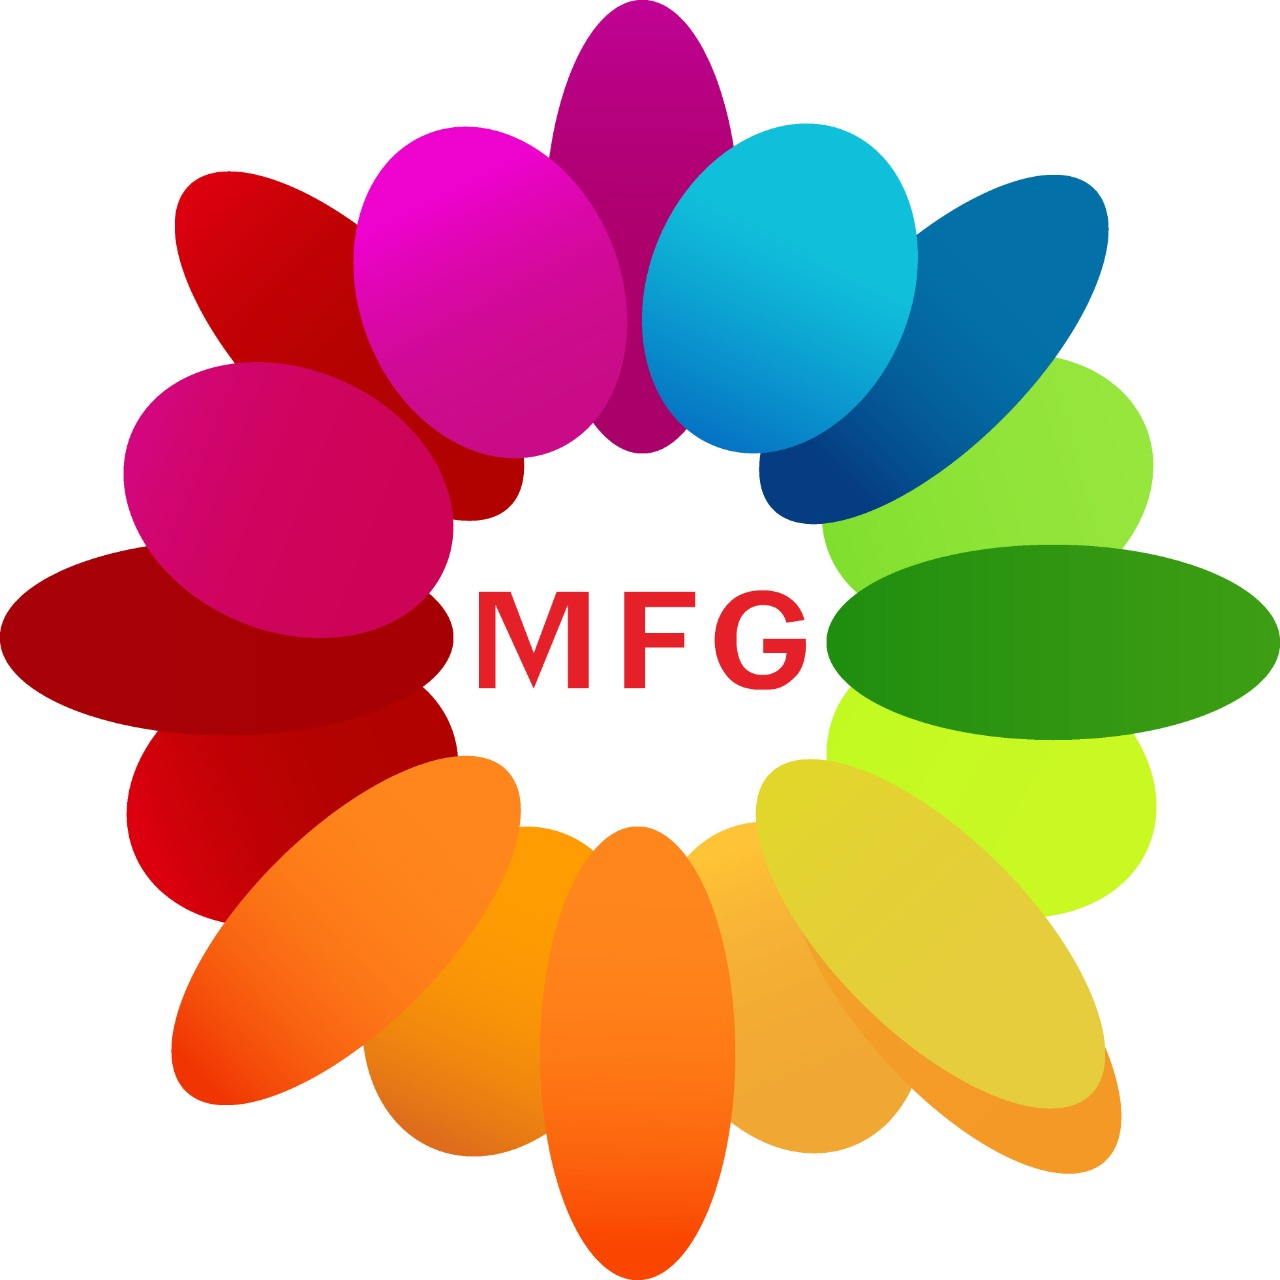 Lilies and roses arrangement